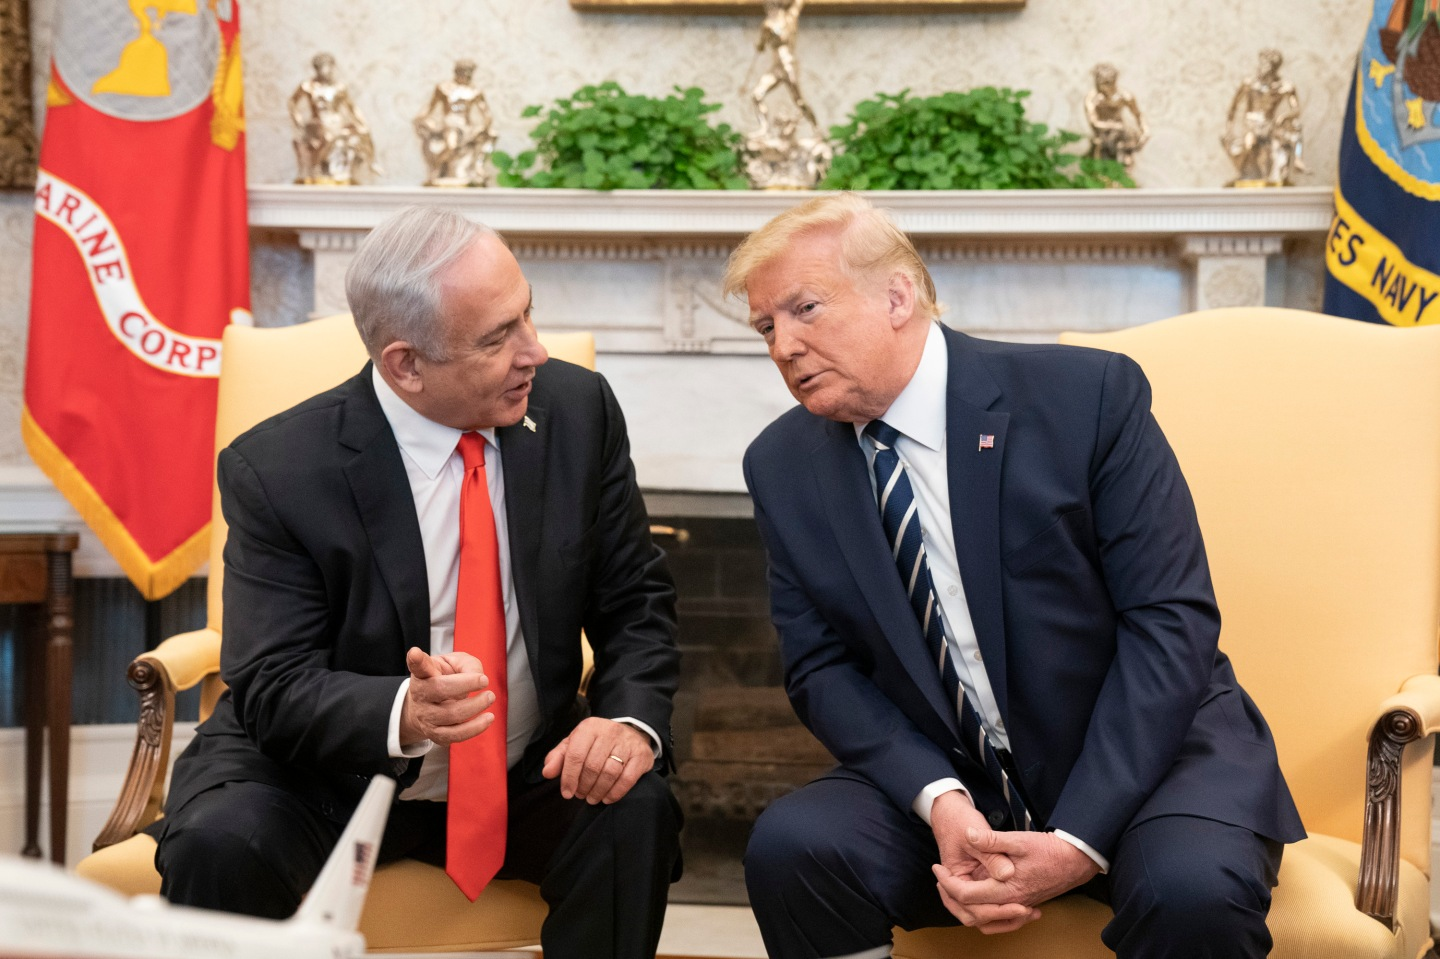 President Donald J. Trump, joined by Vice President Mike Pence, participates in a bilateral meeting with Israeli Prime Minister Benjamin Netanyahu Monday, Jan. 27, 2020, in the Oval Office of the White House. (Official White House Photo by D.Myles Cullen)